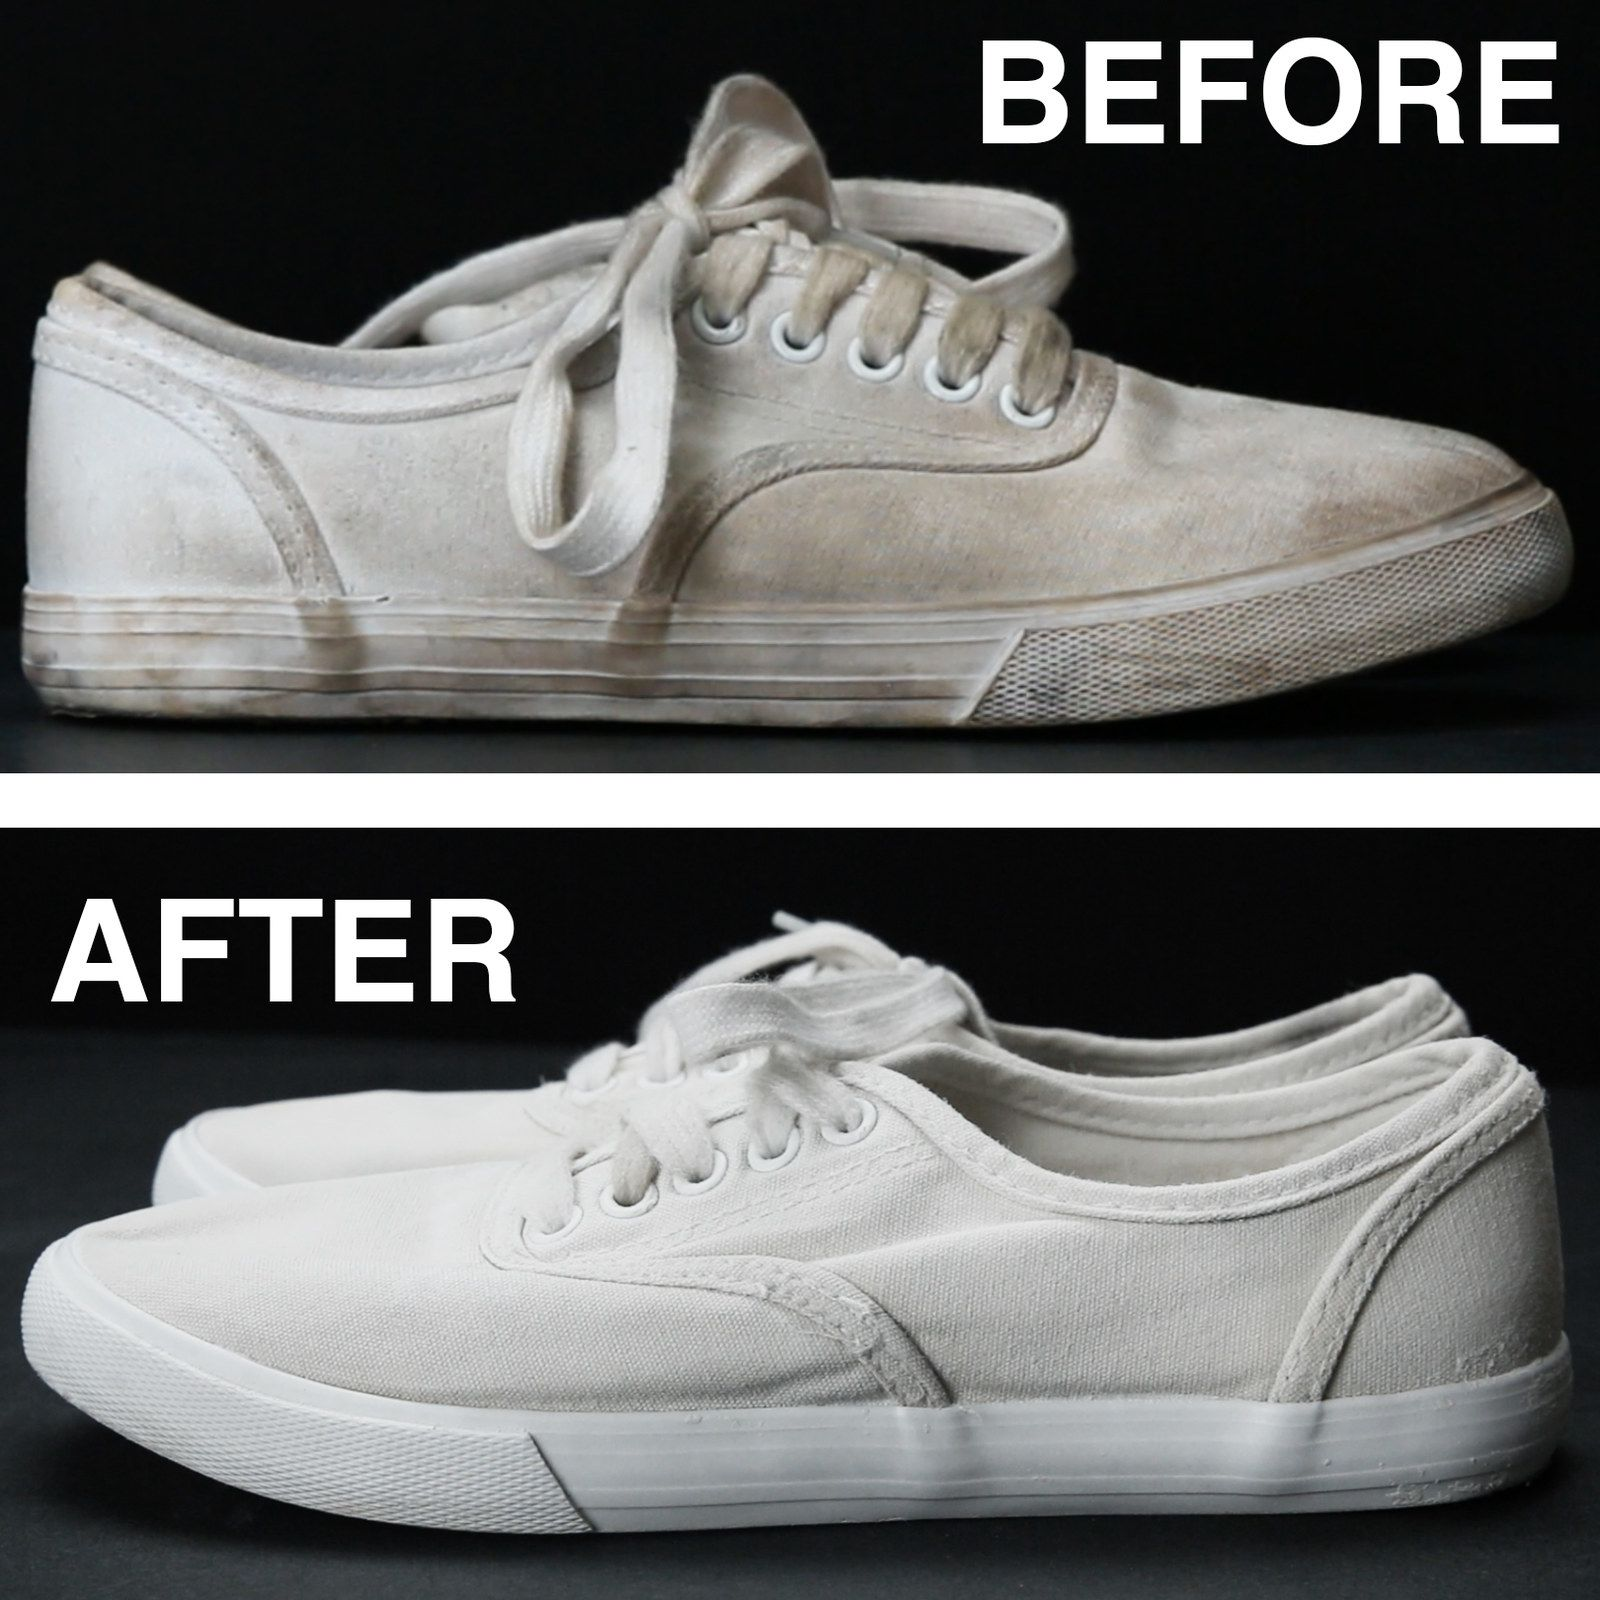 5f9825ced Finally There s An Easy Way To Clean Off Your White Shoes To Make Them Look  Brand New Again